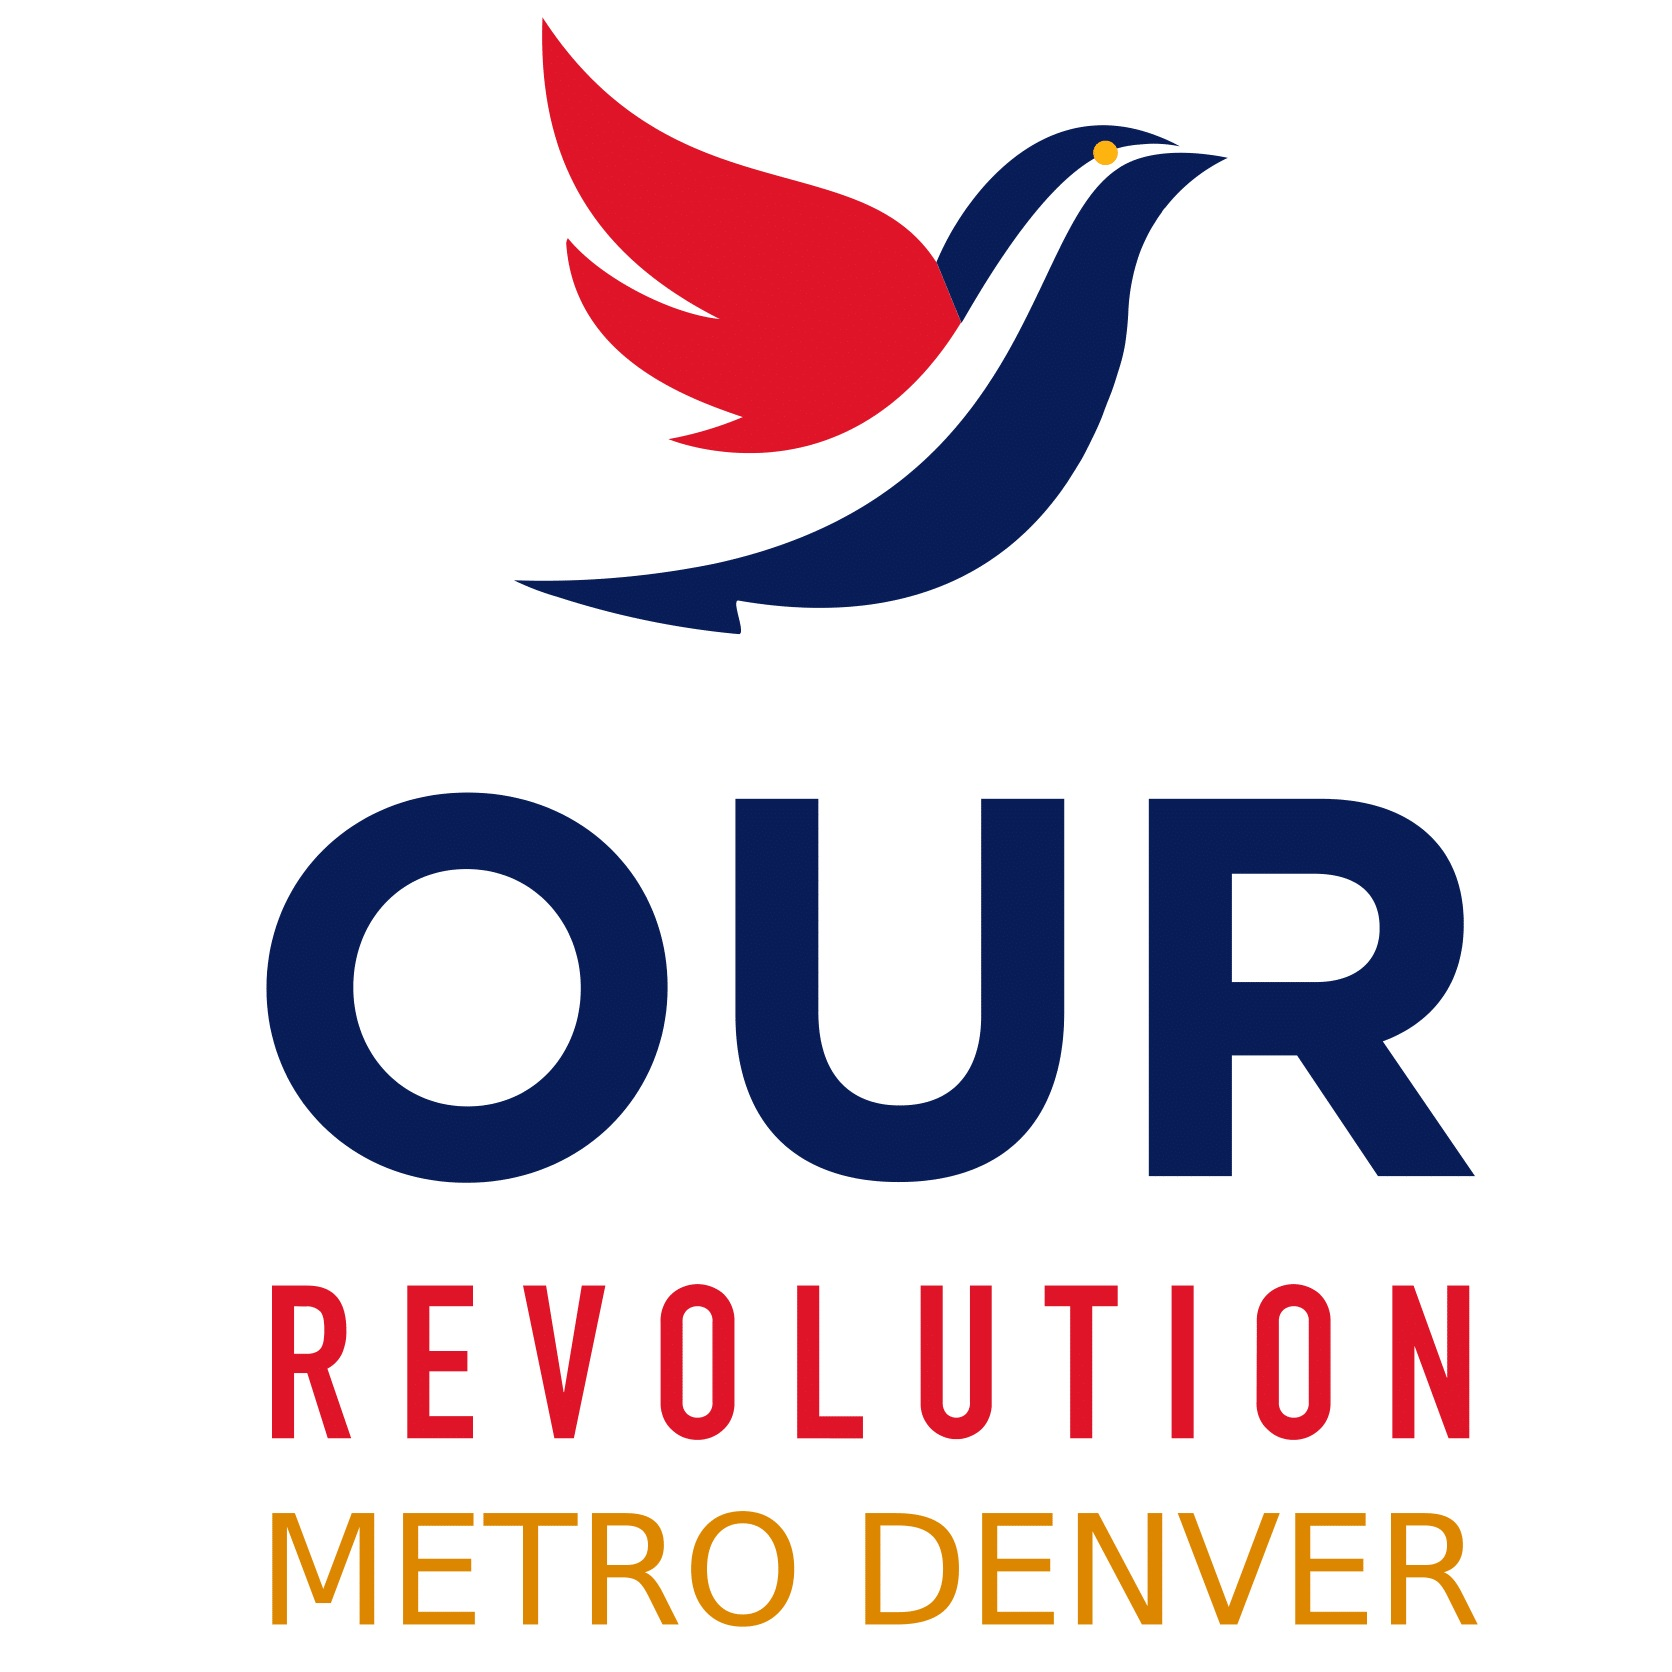 Our Revolution Metro Denver  The ORMD Council voted to endorse Candi CdeBaca following a lengthy evaluation, including research and interviews. Candi shares Our Revolutions' progressive values and policy  principles. Empowering local community is one of Candi's foremost ambitions. Advocating for a public bank for Denver citizens, securing community land trusts to prevent displacement of marginalized residents, and utilizing Registered Neighborhood Organizations to amplify local voices, are just a few of the ways she plans on strengthening her community when she joins City Council.